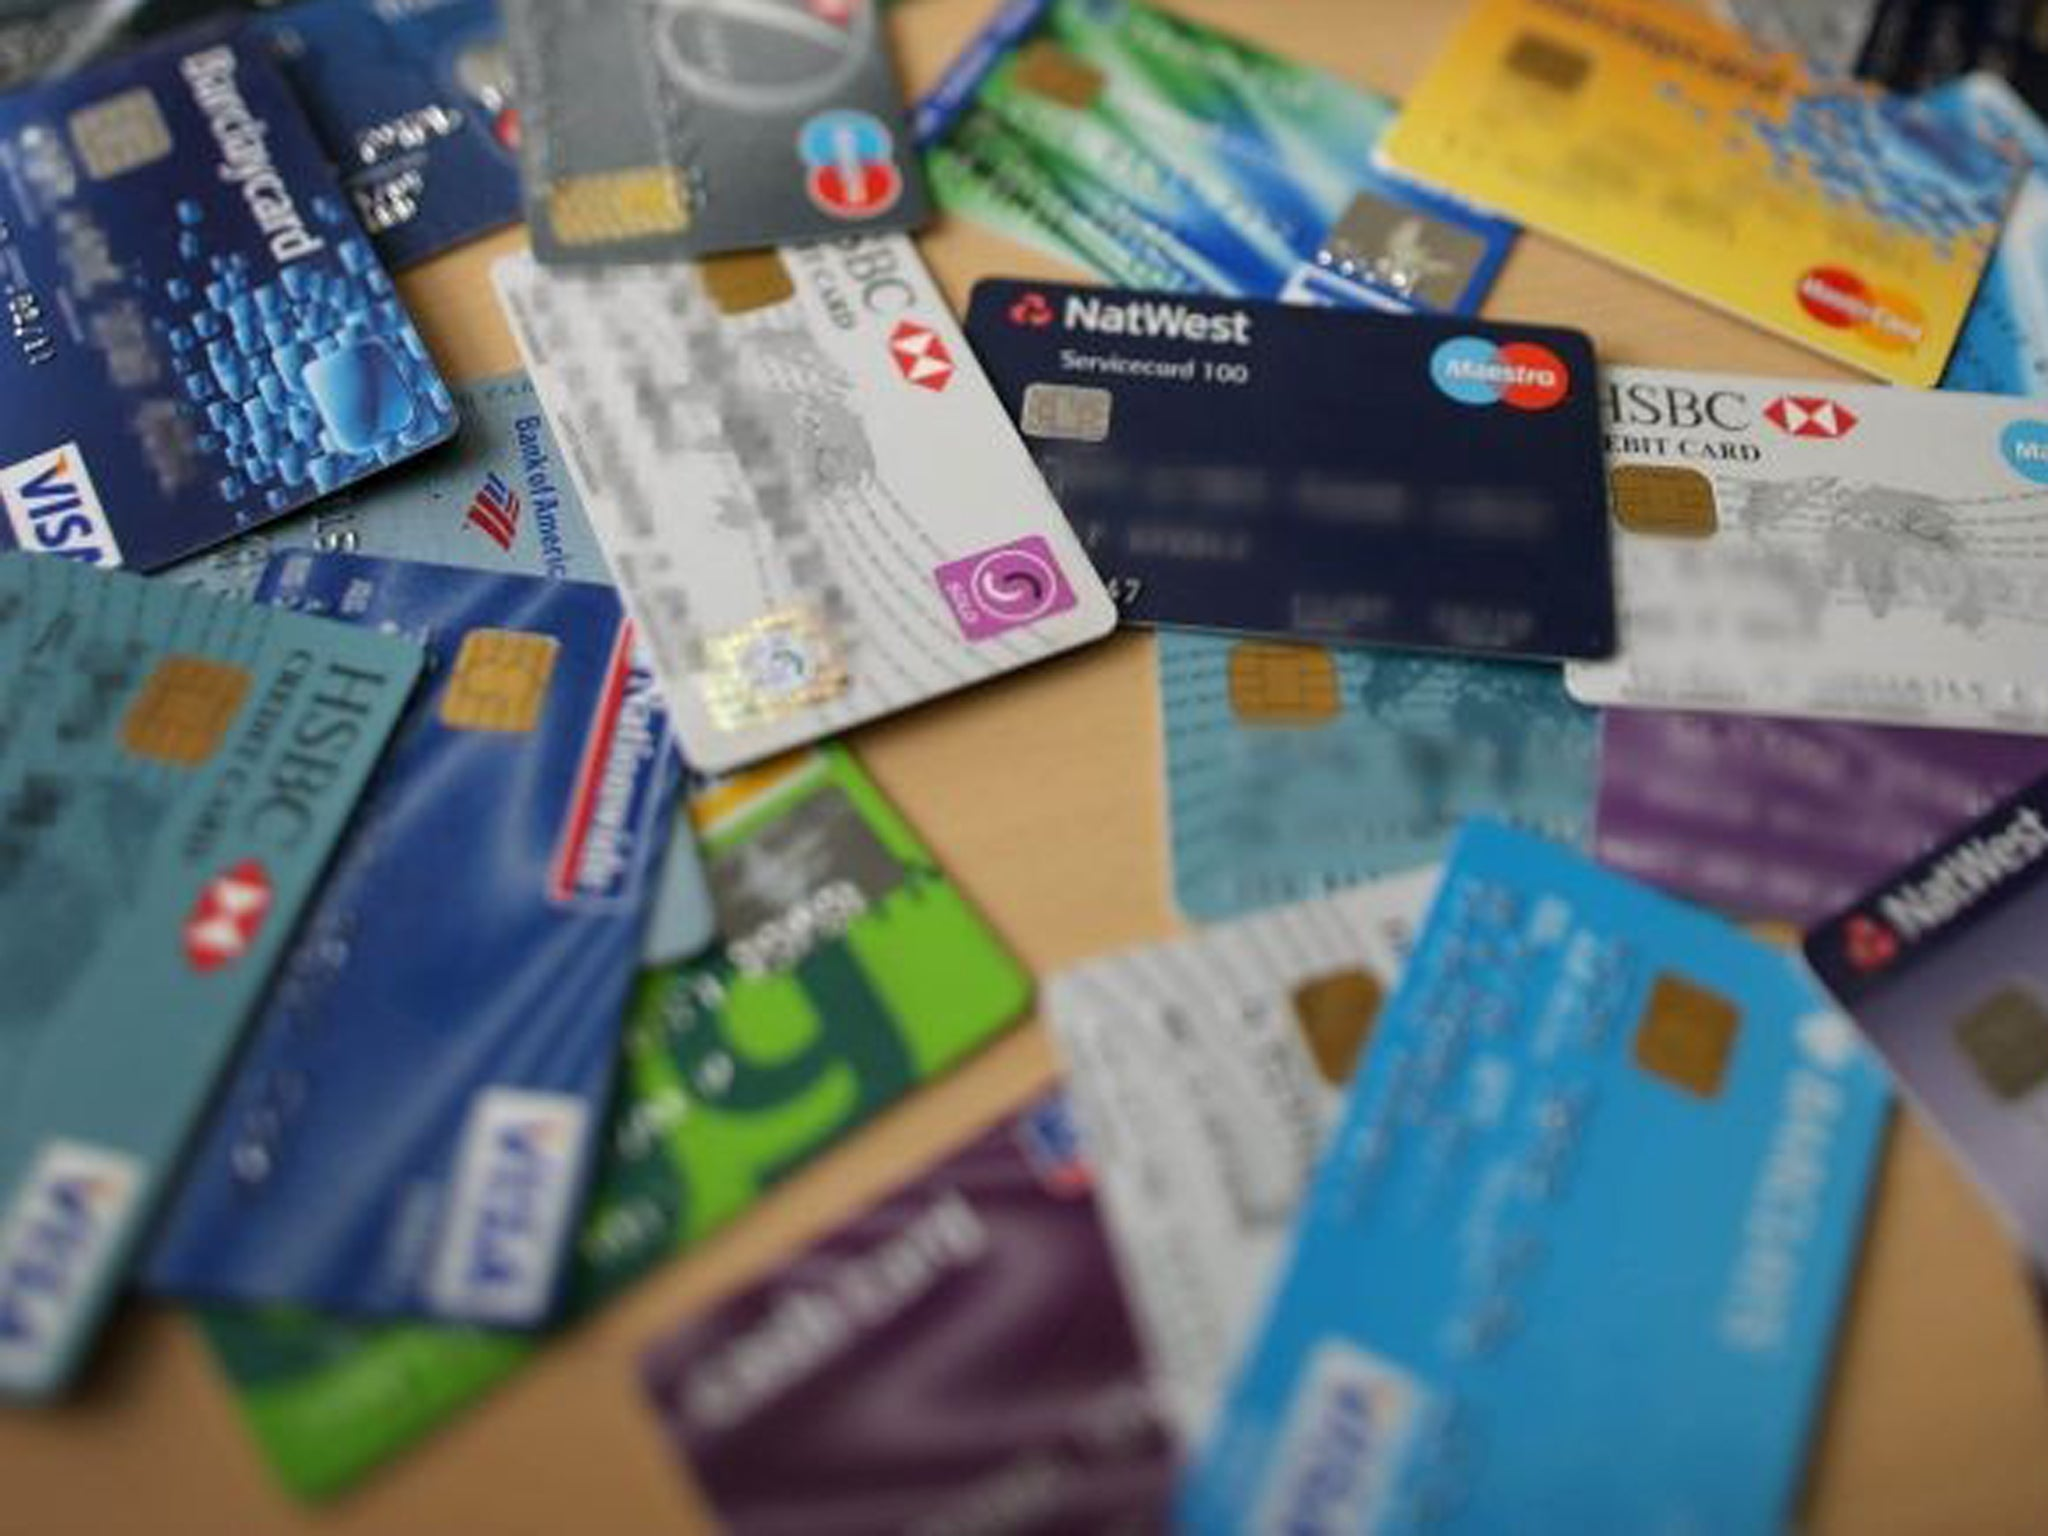 Natwest credit card business image collections free business cards natwest credit card business image collections free business cards natwest business credit card terms and conditions magicingreecefo Image collections